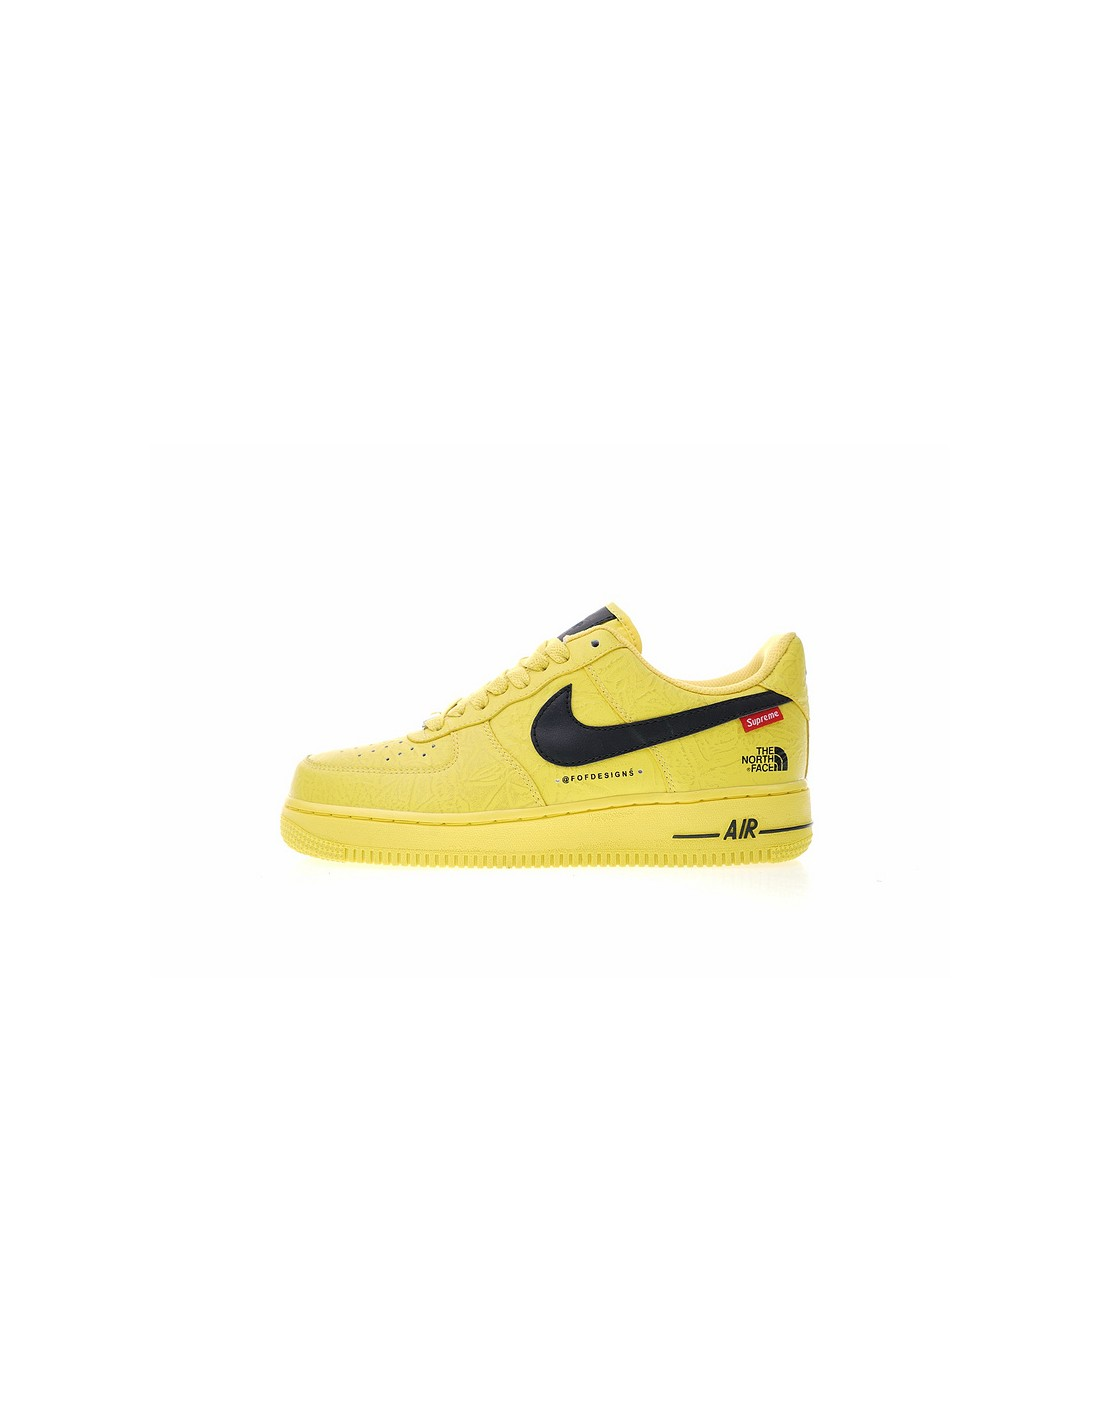 nouvelle collection 2f1b8 ae024 Air Force 1 x Supreme x The North Face